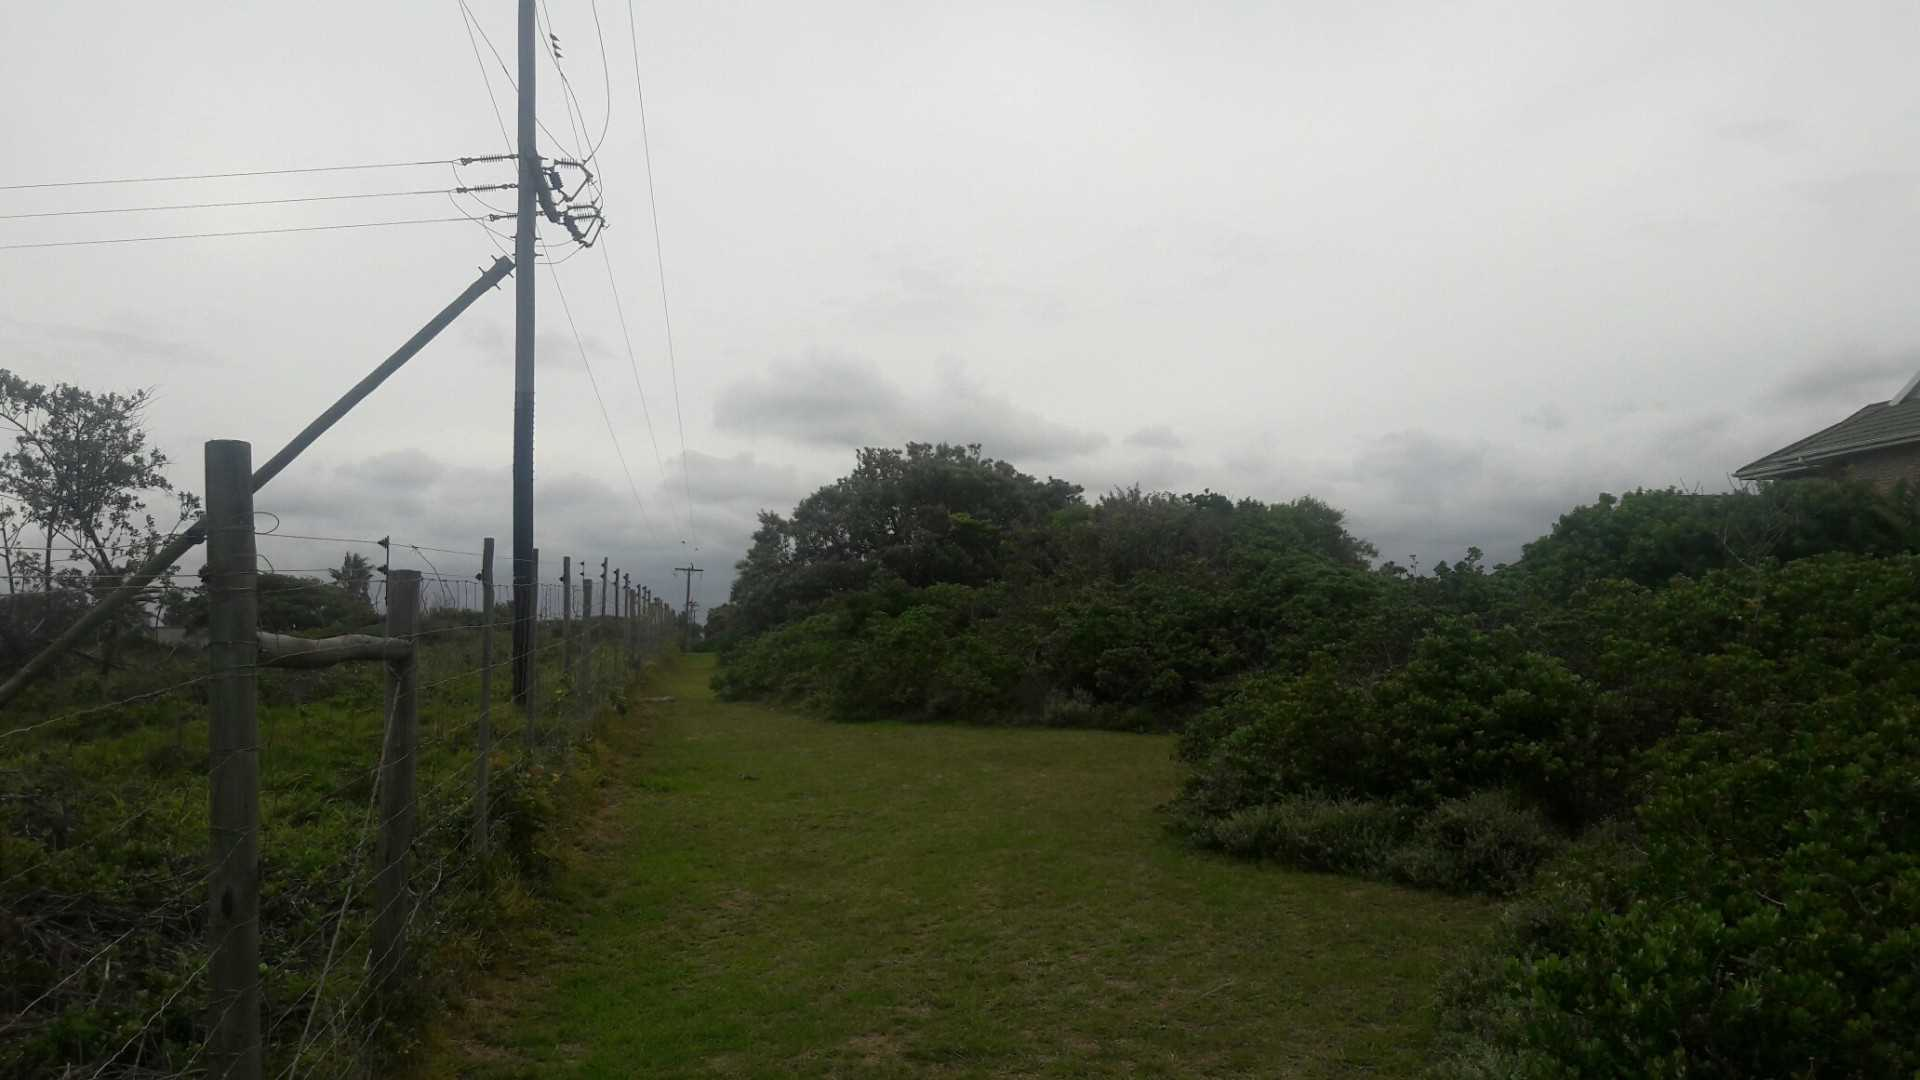 PLOT FROM THE FRONT - BOUNDARY FENCE